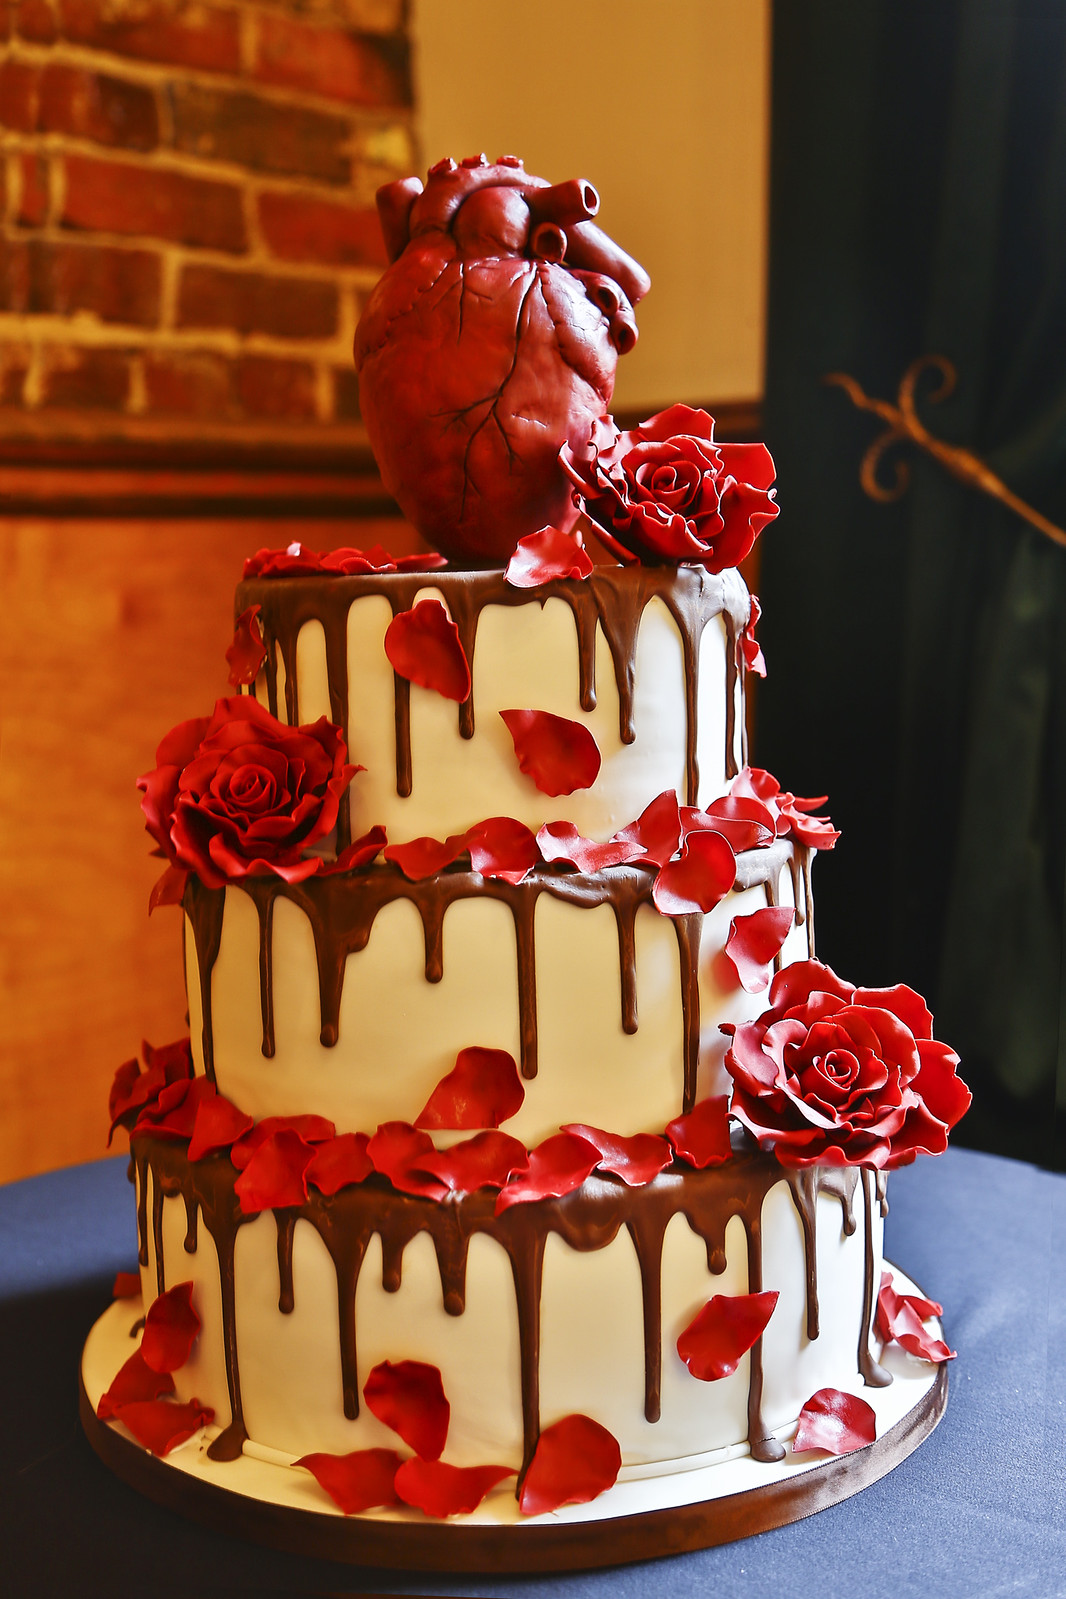 Eat your heart out of your wedding cake